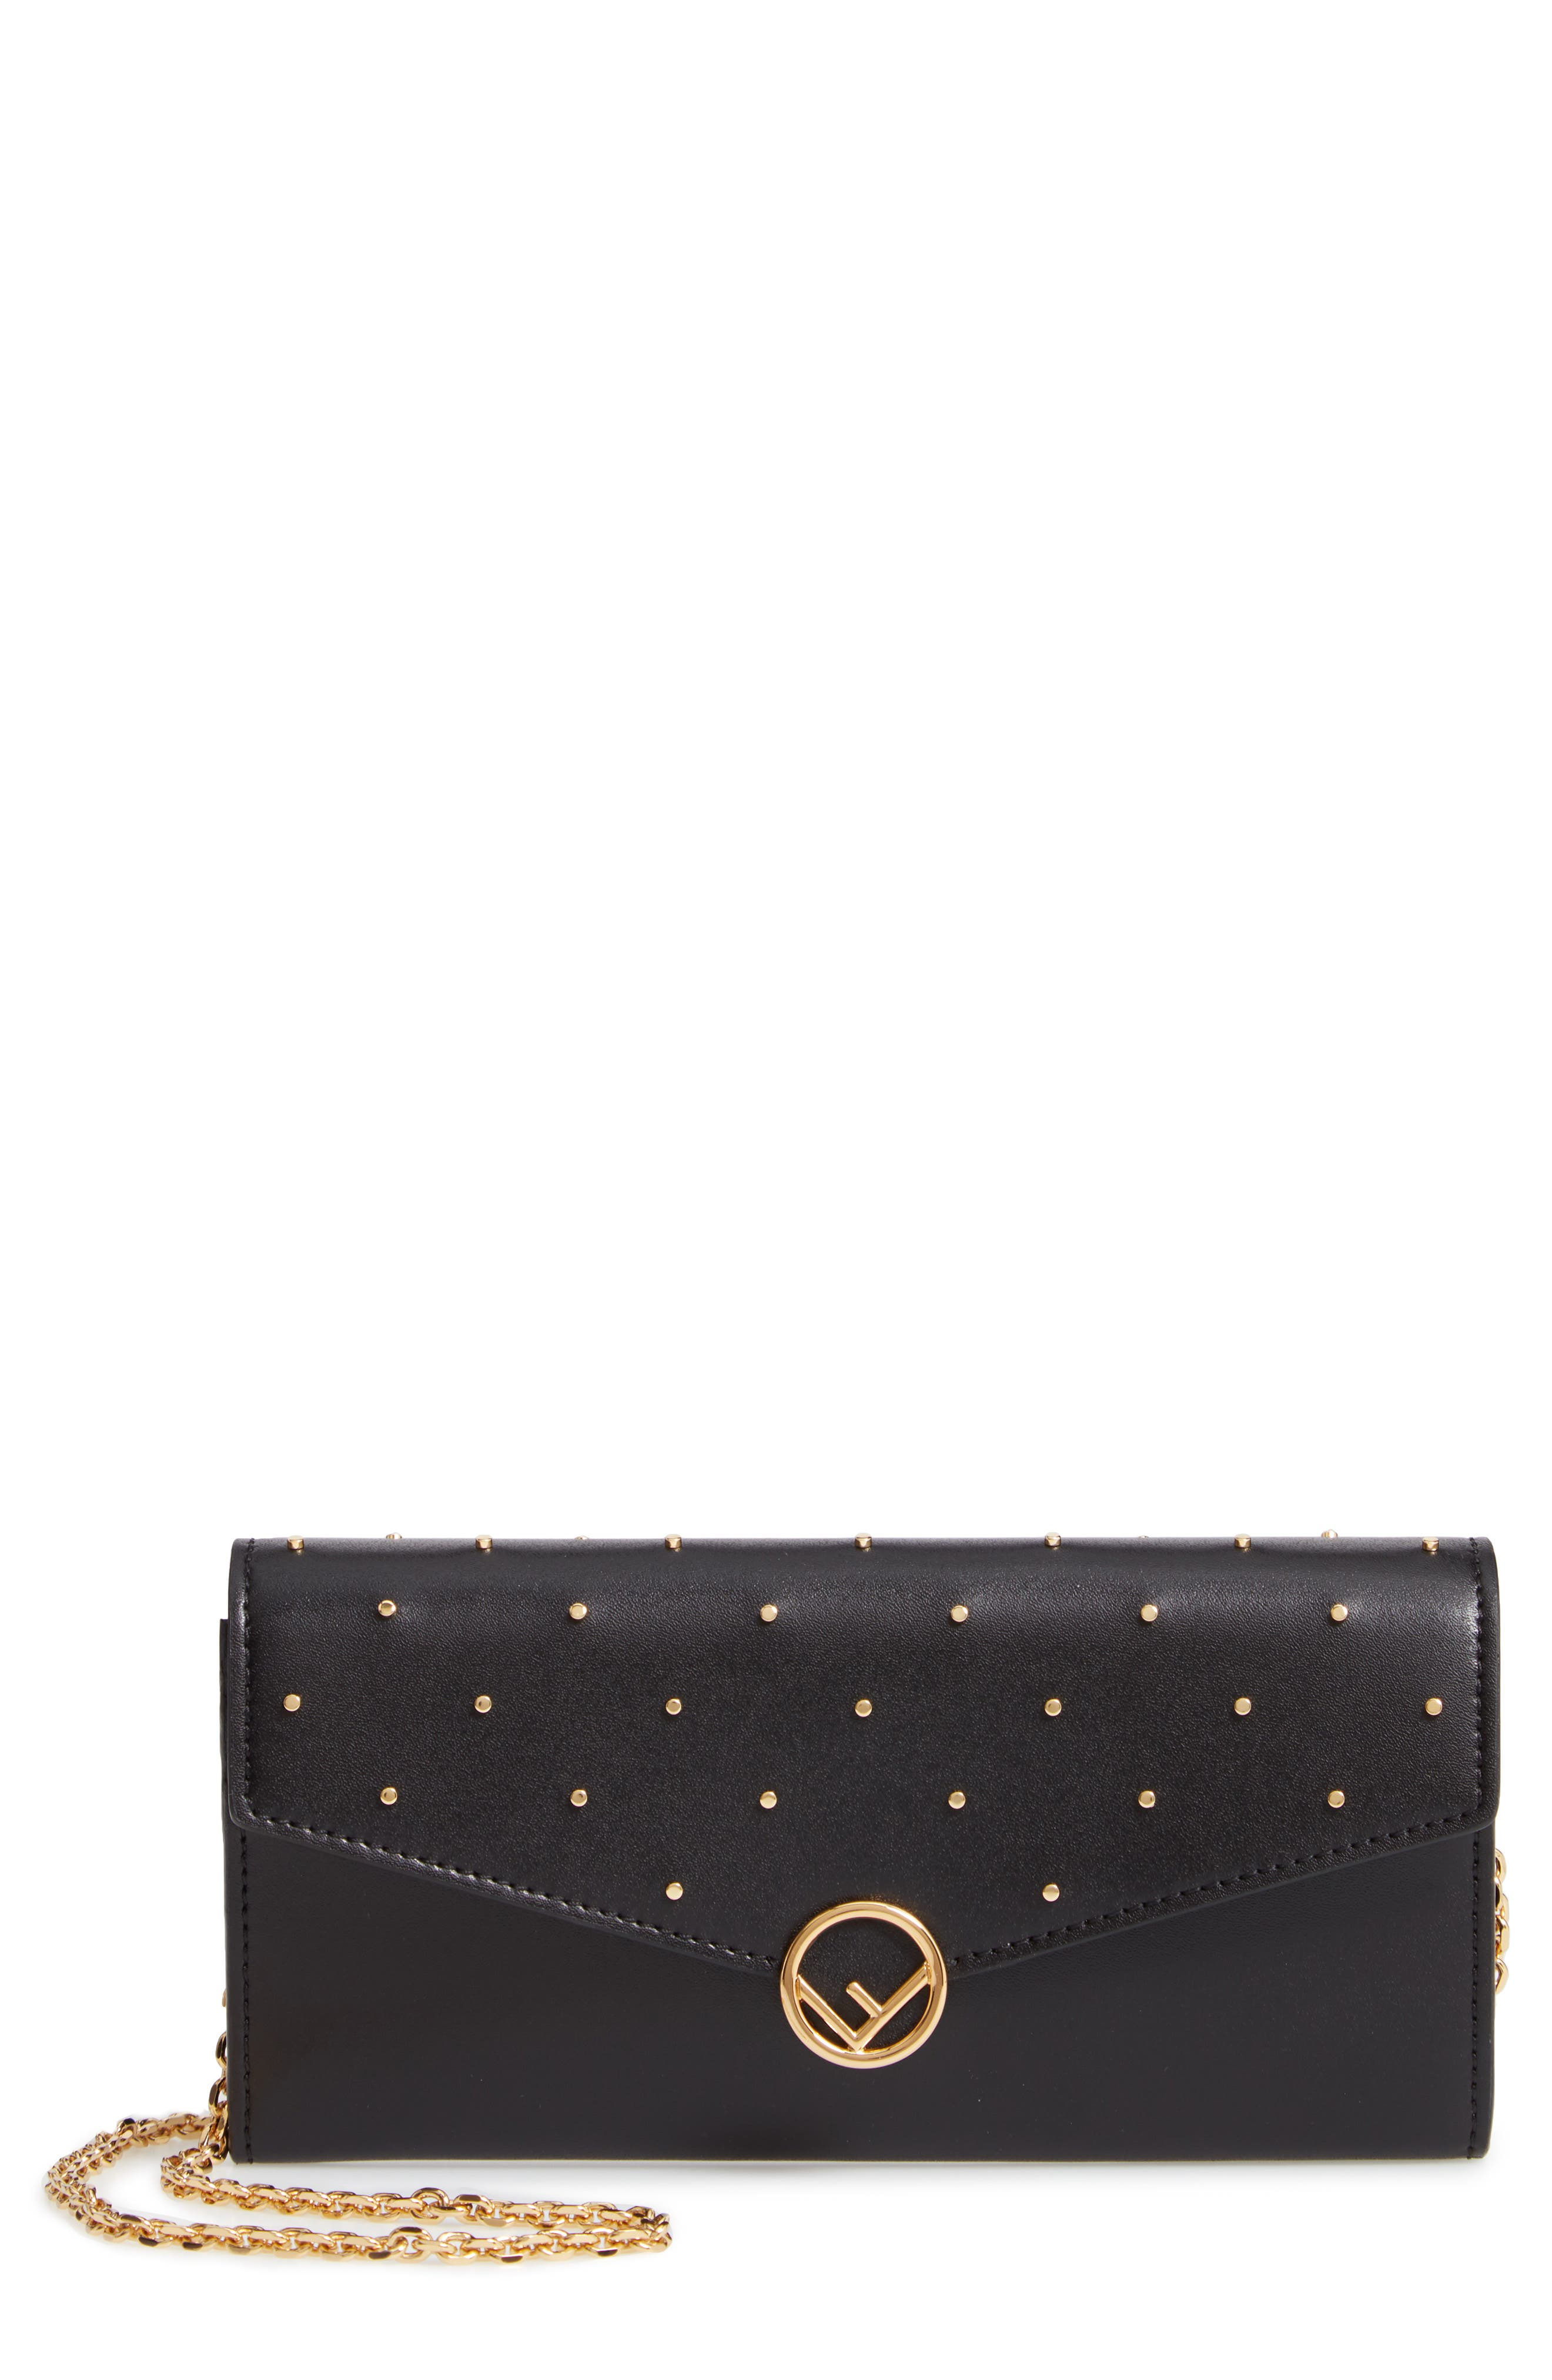 Studded Calfskin Leather Continental Wallet on a Chain,                             Main thumbnail 1, color,                             NERO/ ORO SOFT